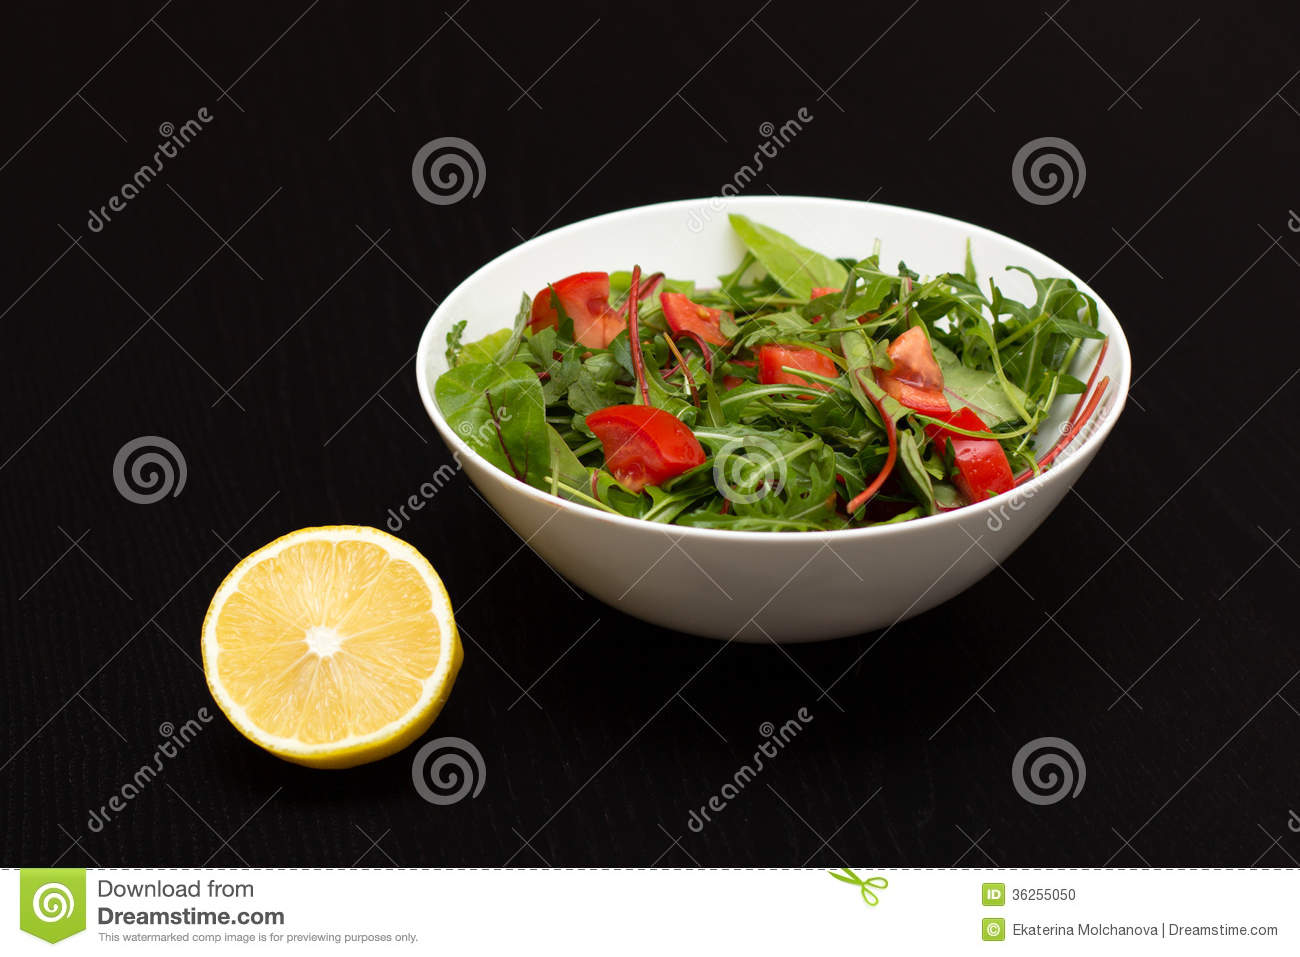 Light salad with tomatoes in white china bowl and lemon